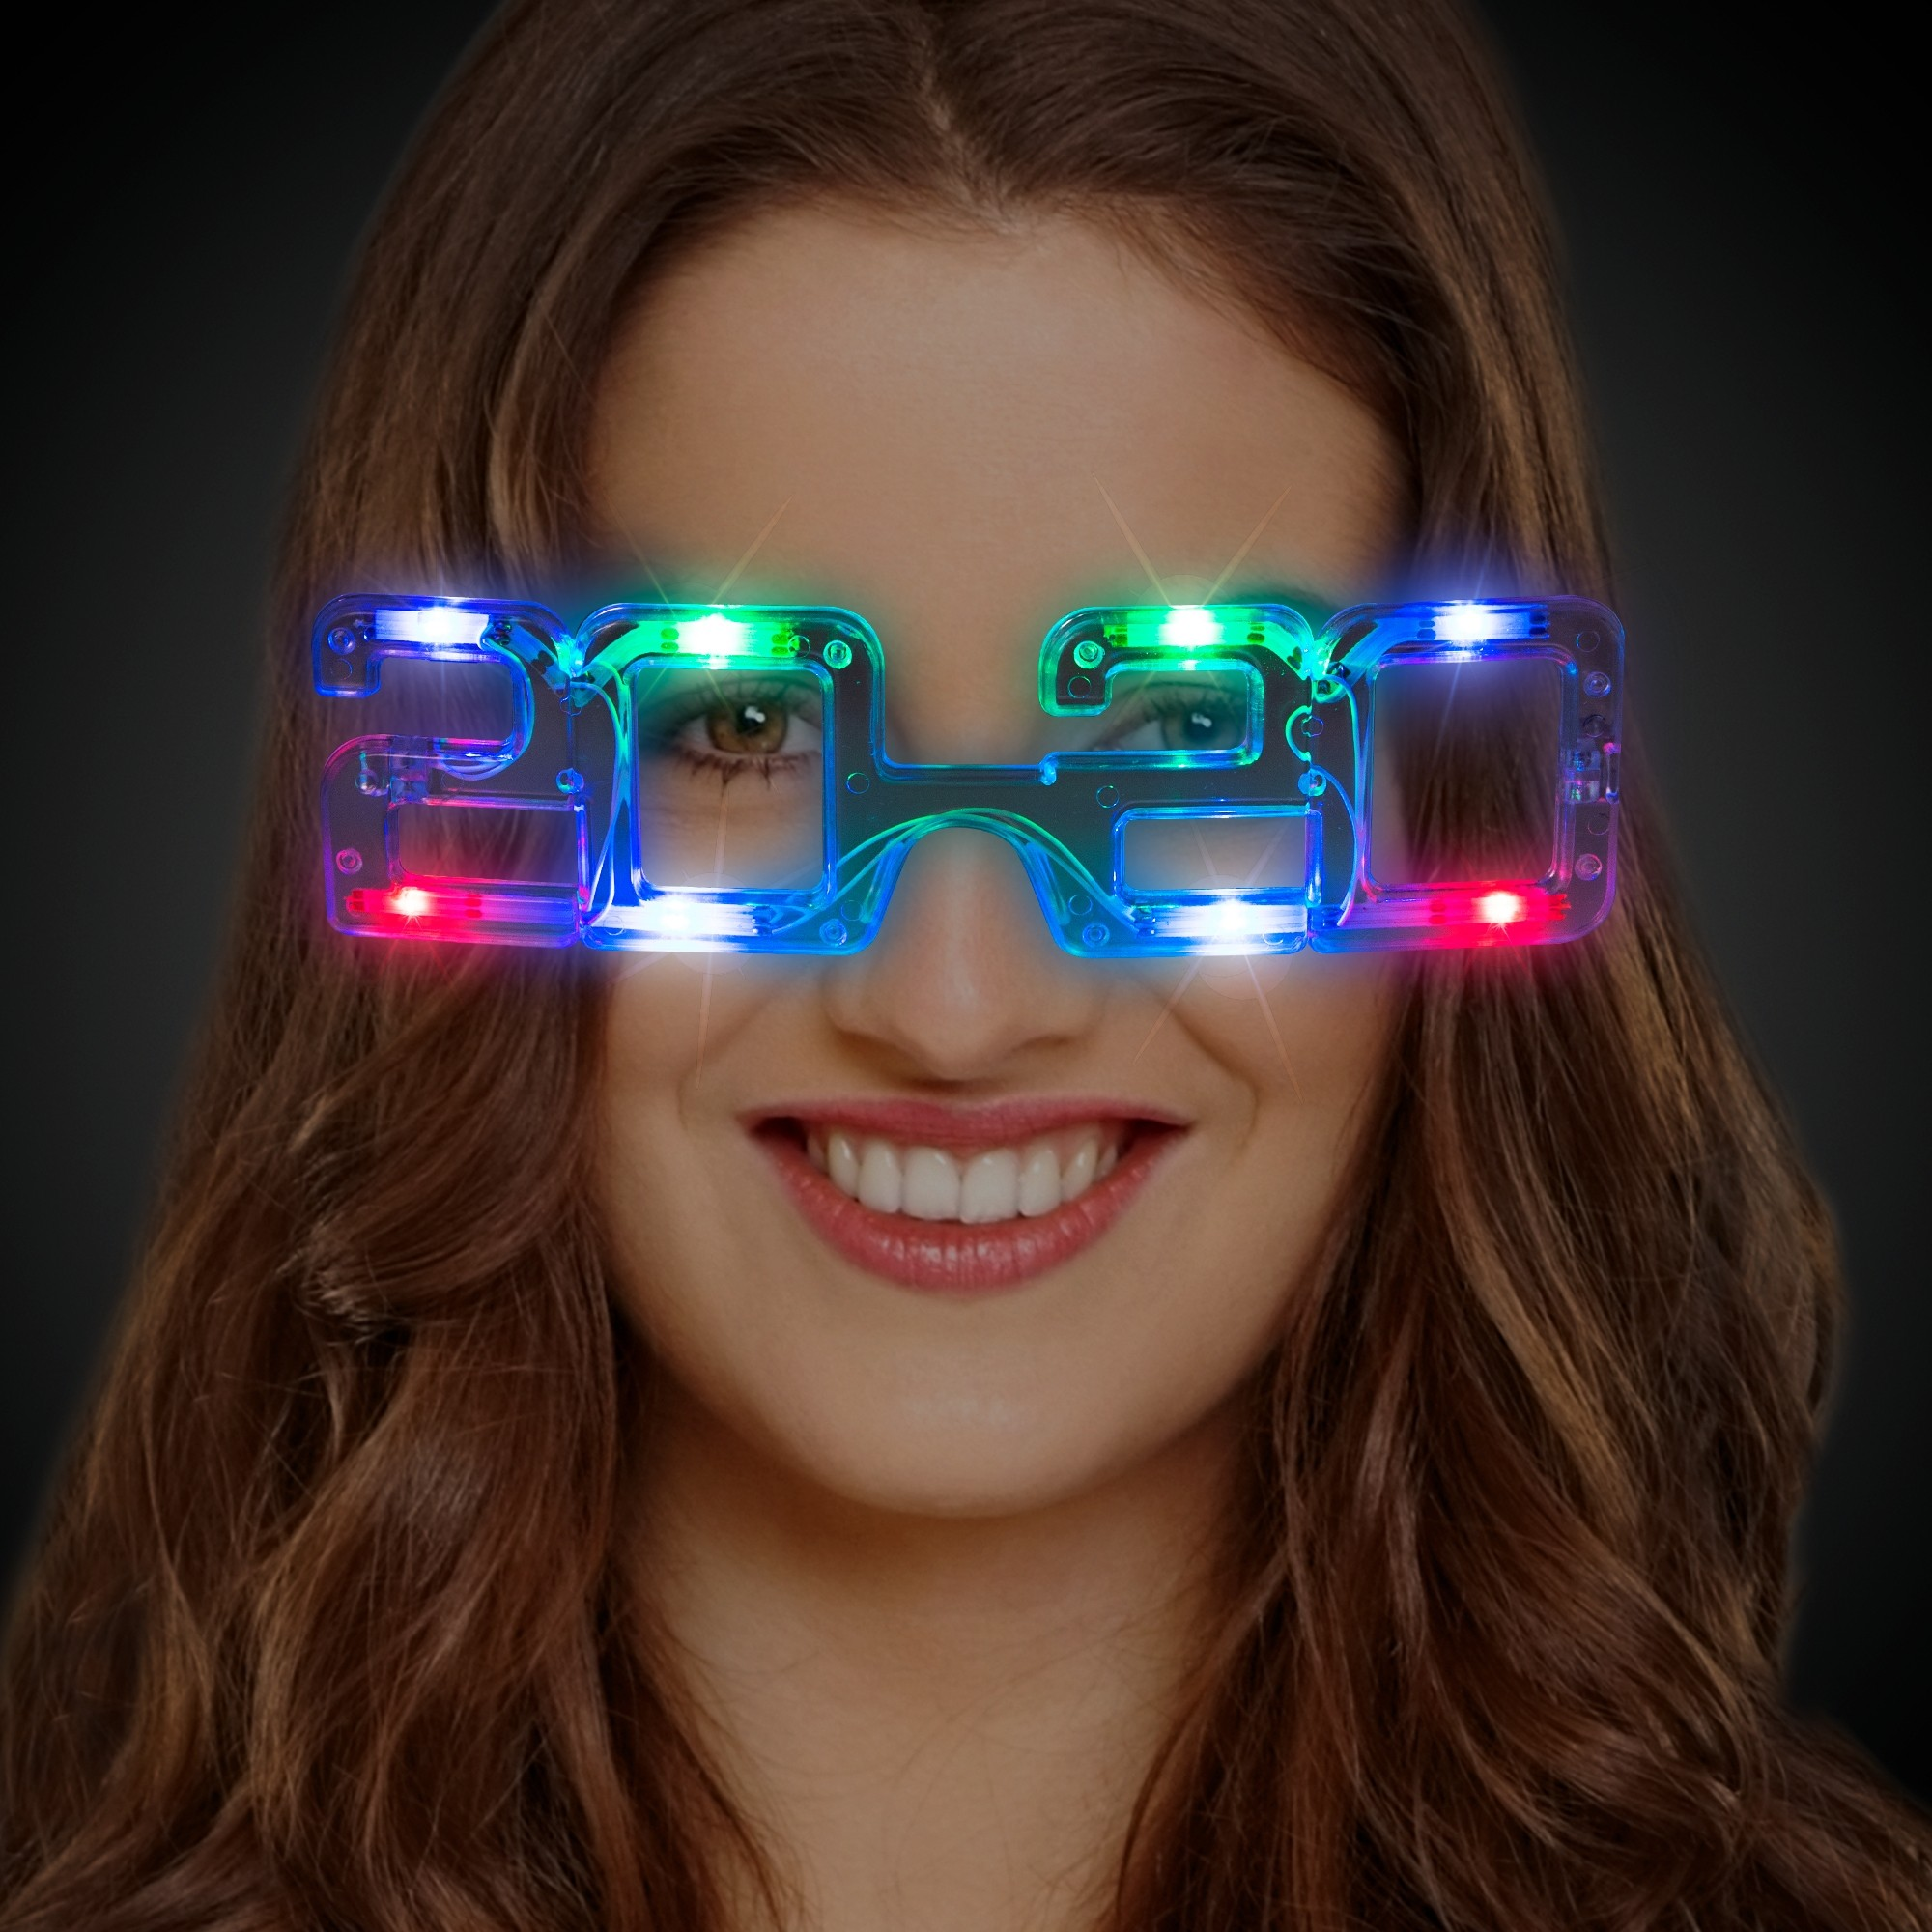 2021 LED EYEGLASSES - MULTI